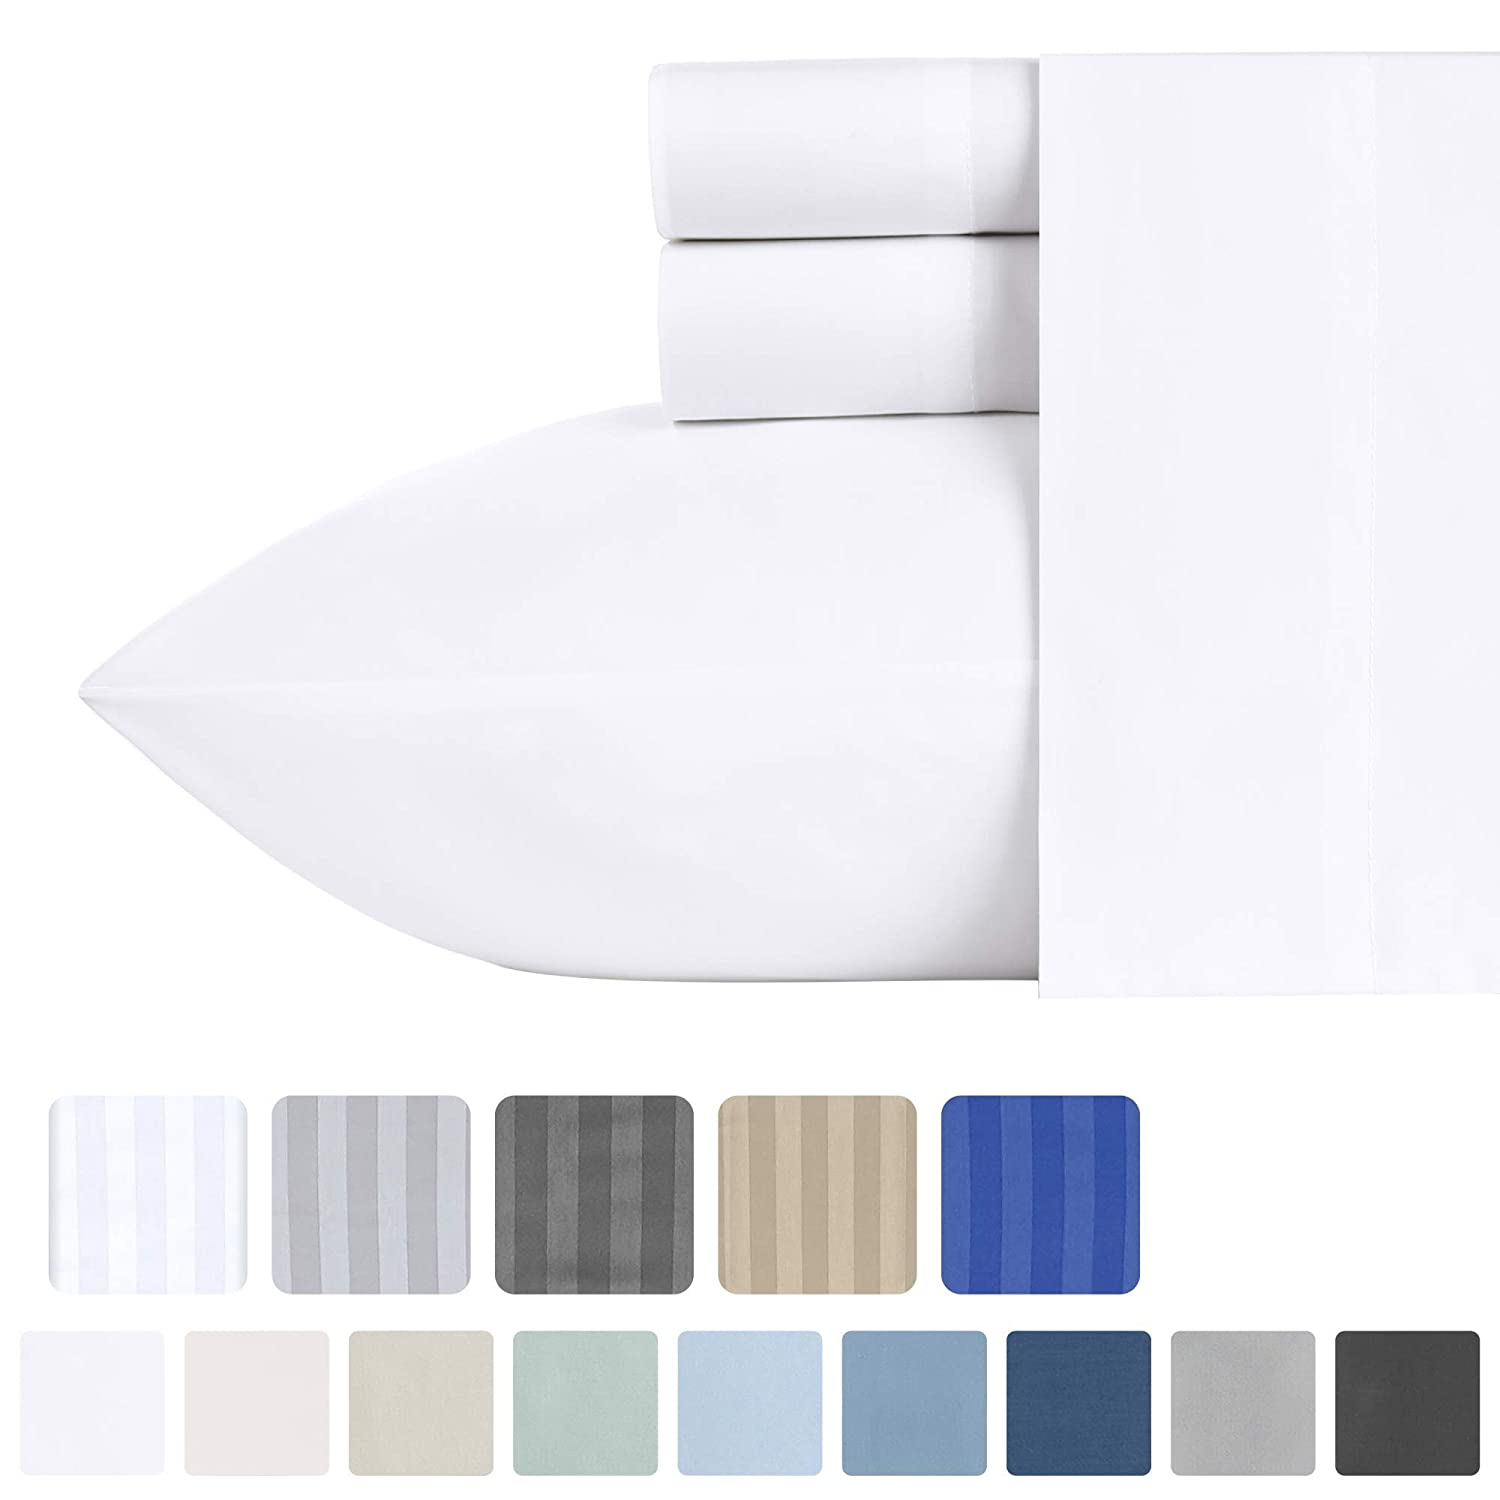 500-Thread-Count California King Woven Sheets - 100% Natural Cotton Pure White, 4 Piece Sateen Weave Bedding Set, Luxury Finish Soft Bed Sheets, Deep Pocket Fits Mattress Upto 18 Inches